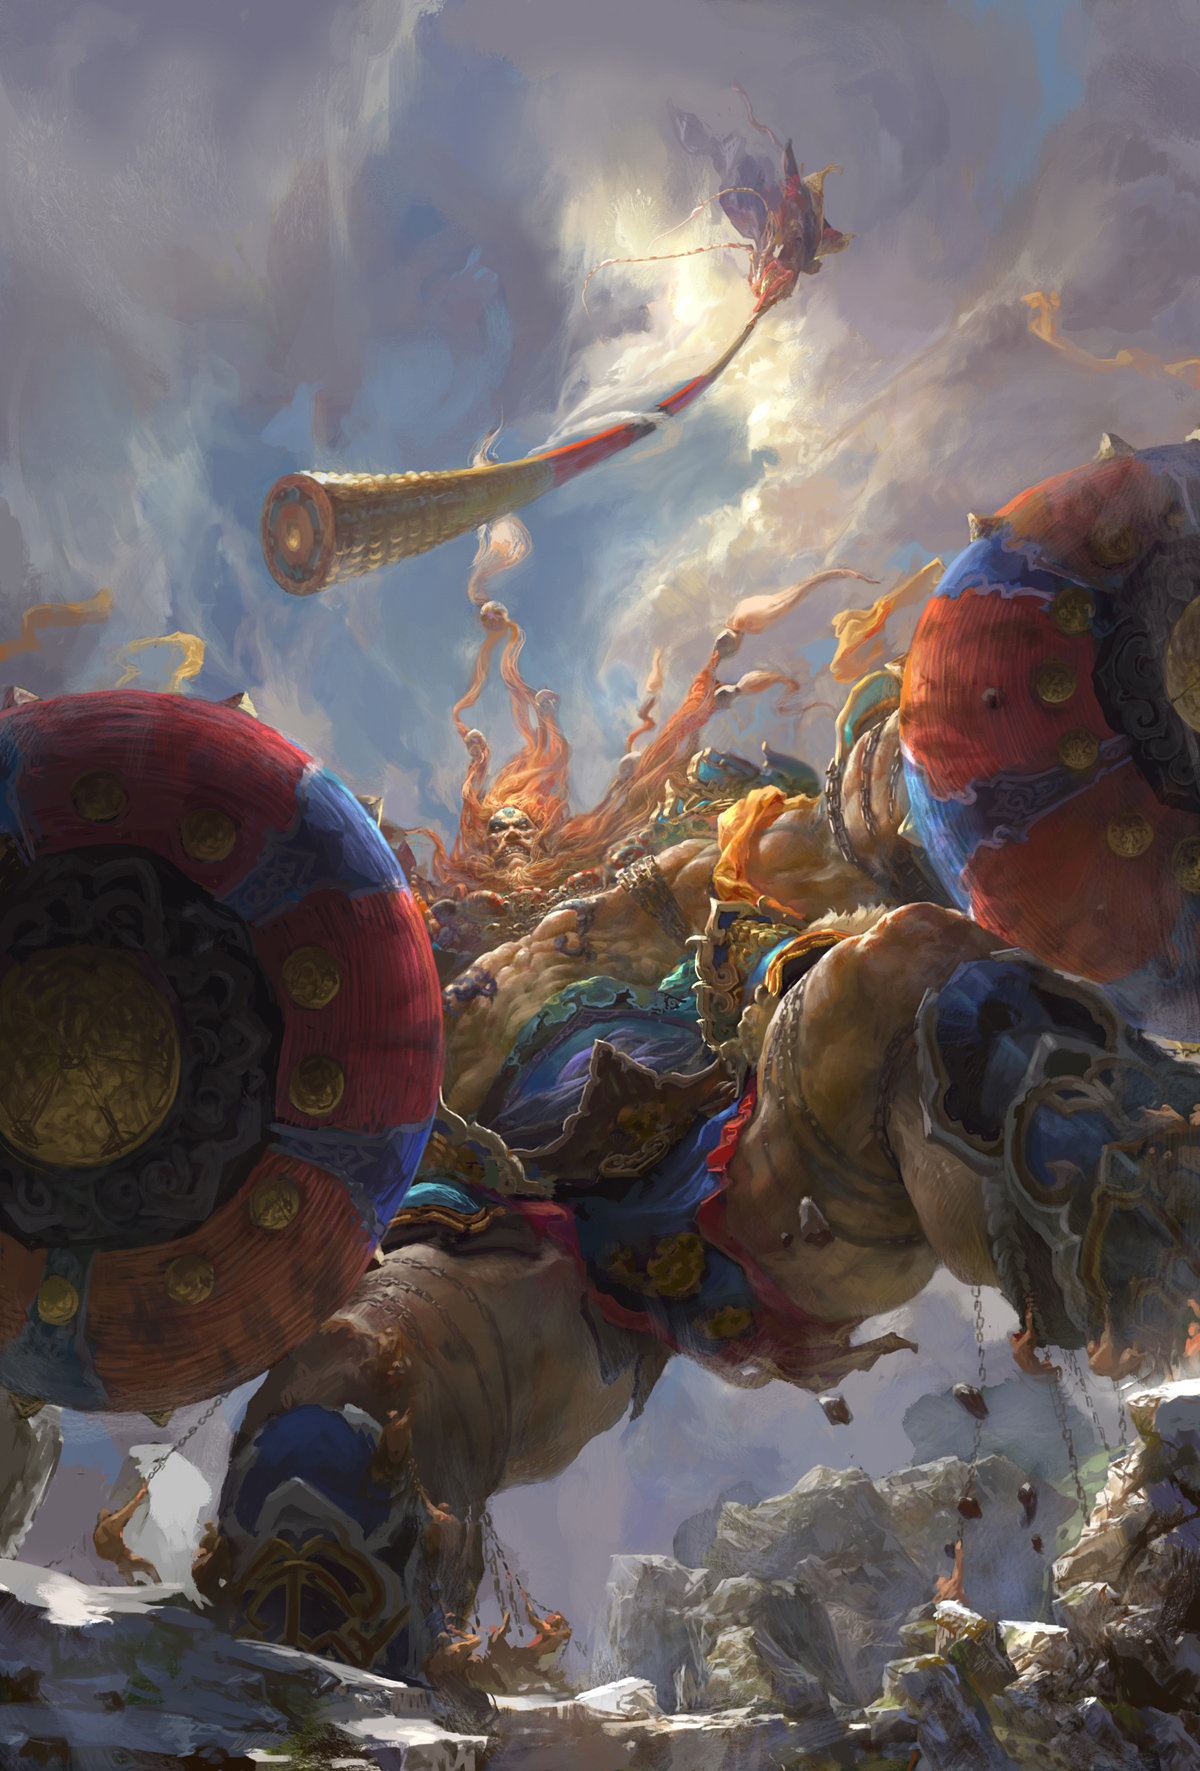 Fenghua zhong monkey king julin god war